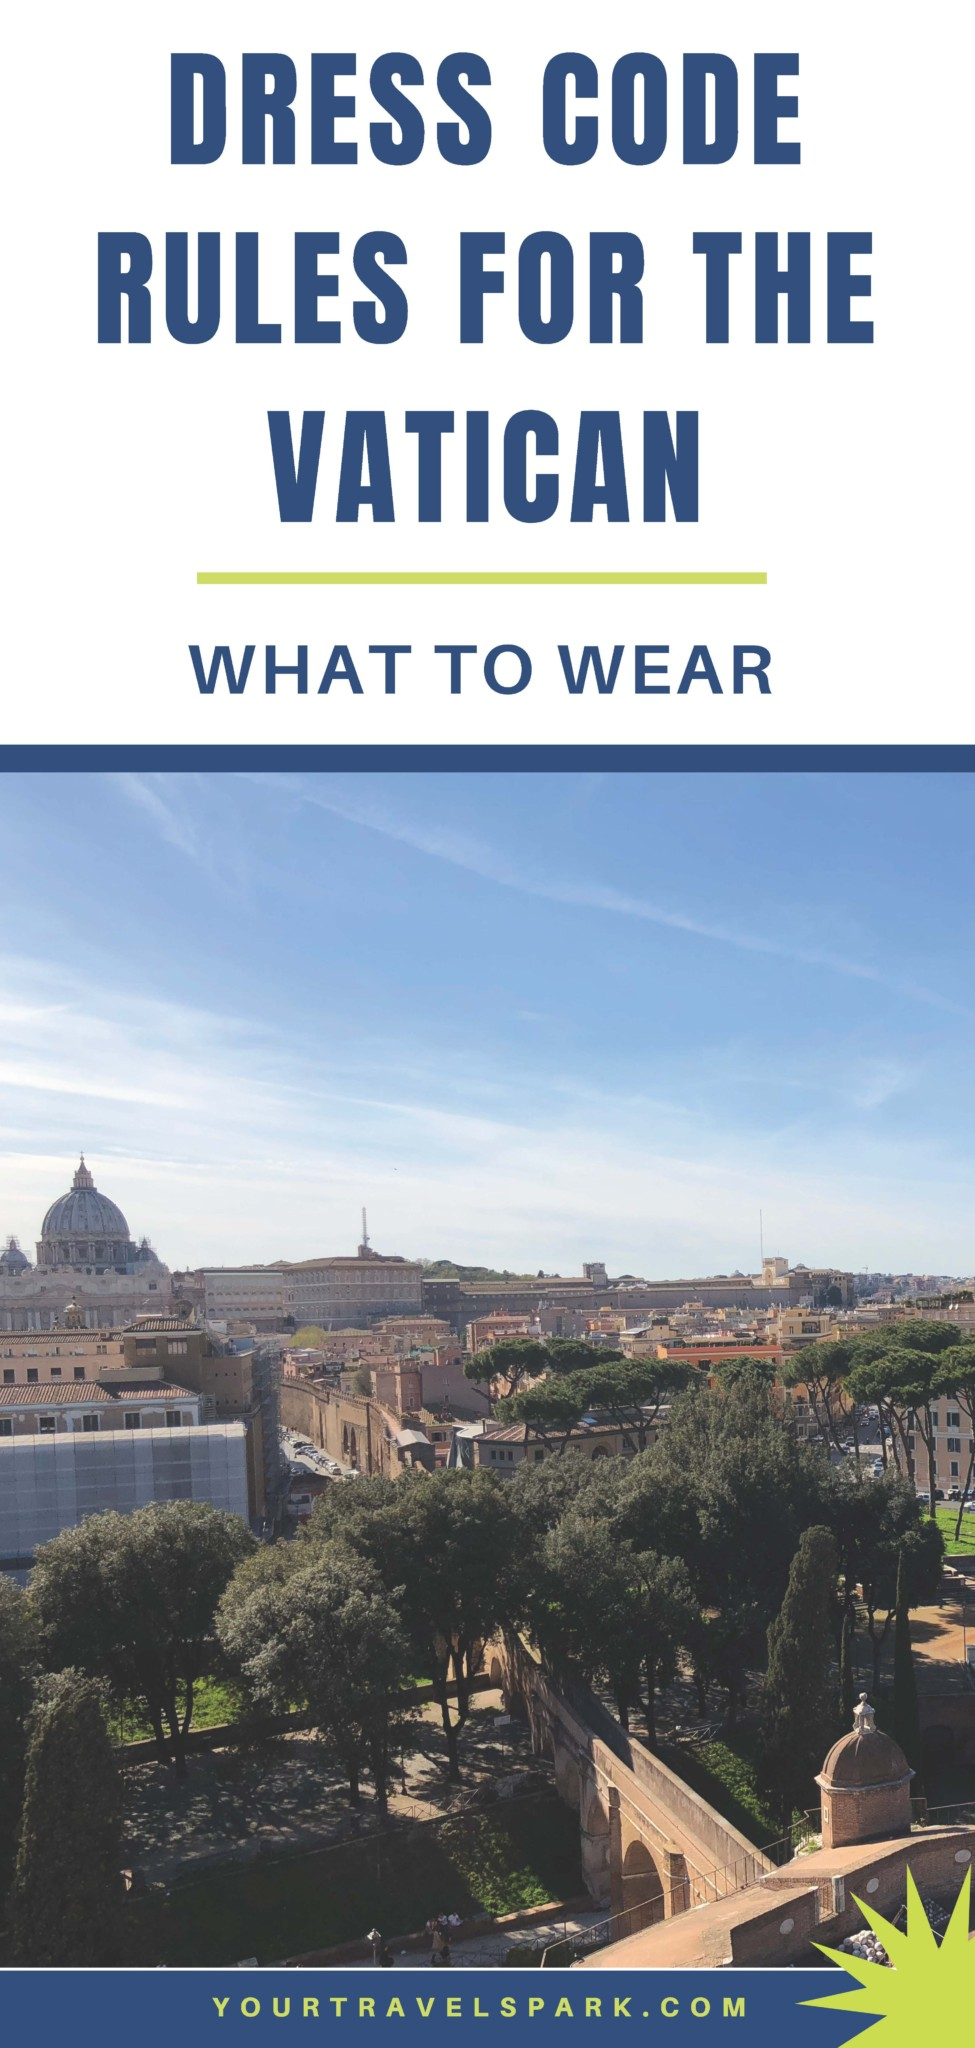 What To Wear To The Vatican Dress Code Rules 2019 You